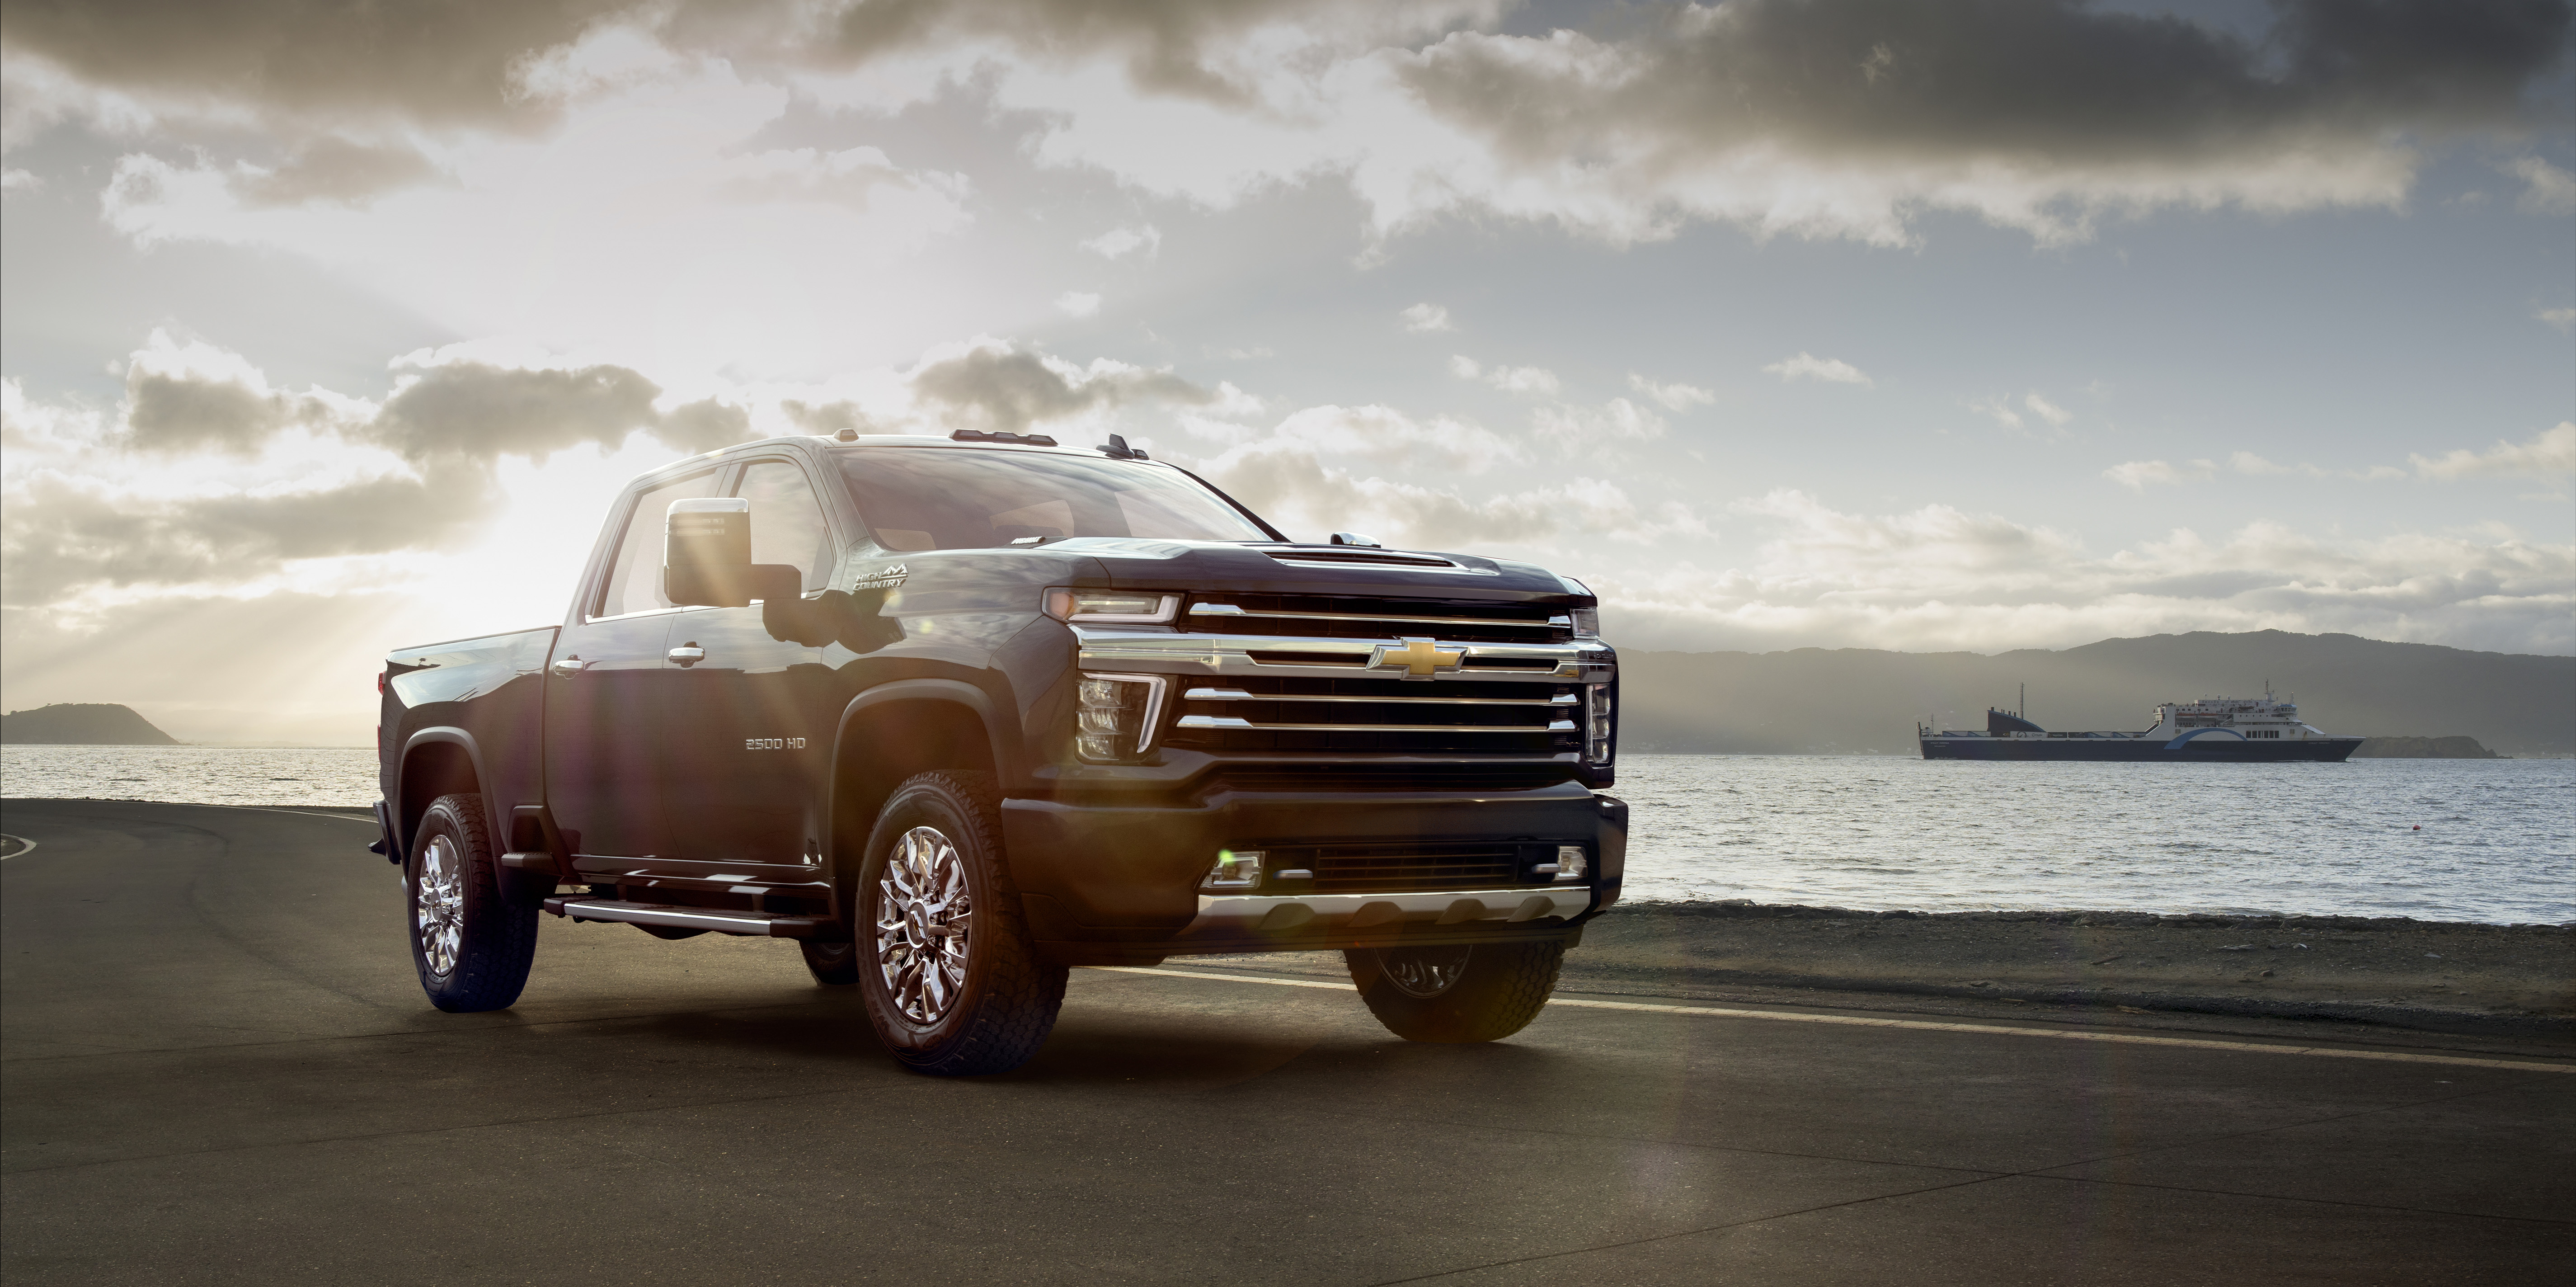 Pulling A Face 2020 Chevrolet Silverado Hd Chevy Half Ton Pick Up Both Trucks Share More Conventional Rear Style With Their Taillights Parroting Those Found On The New Does Take Care To Mention